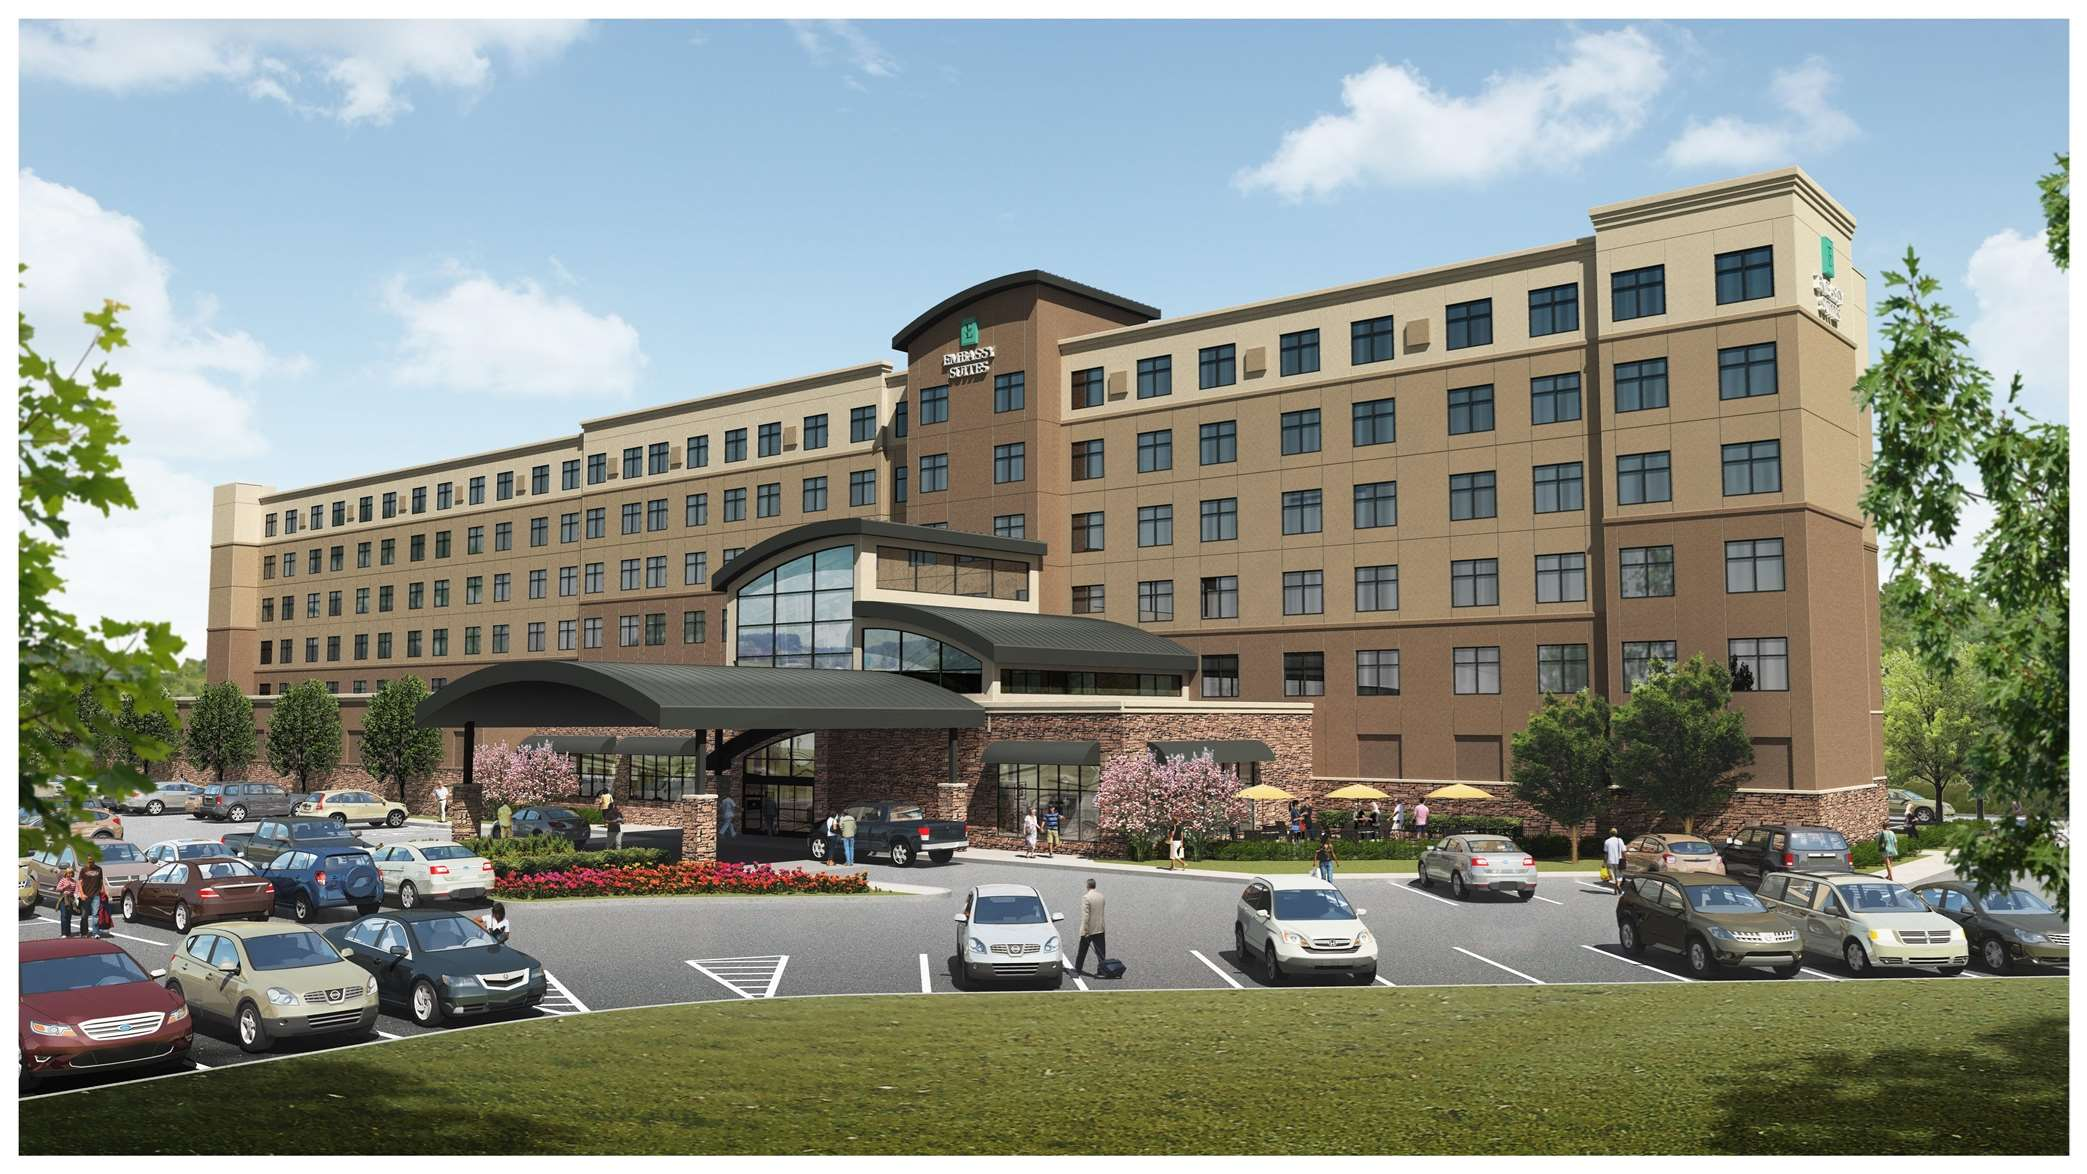 Embassy suites by hilton akron canton airport at 7883 Hilton garden inn akron canton airport